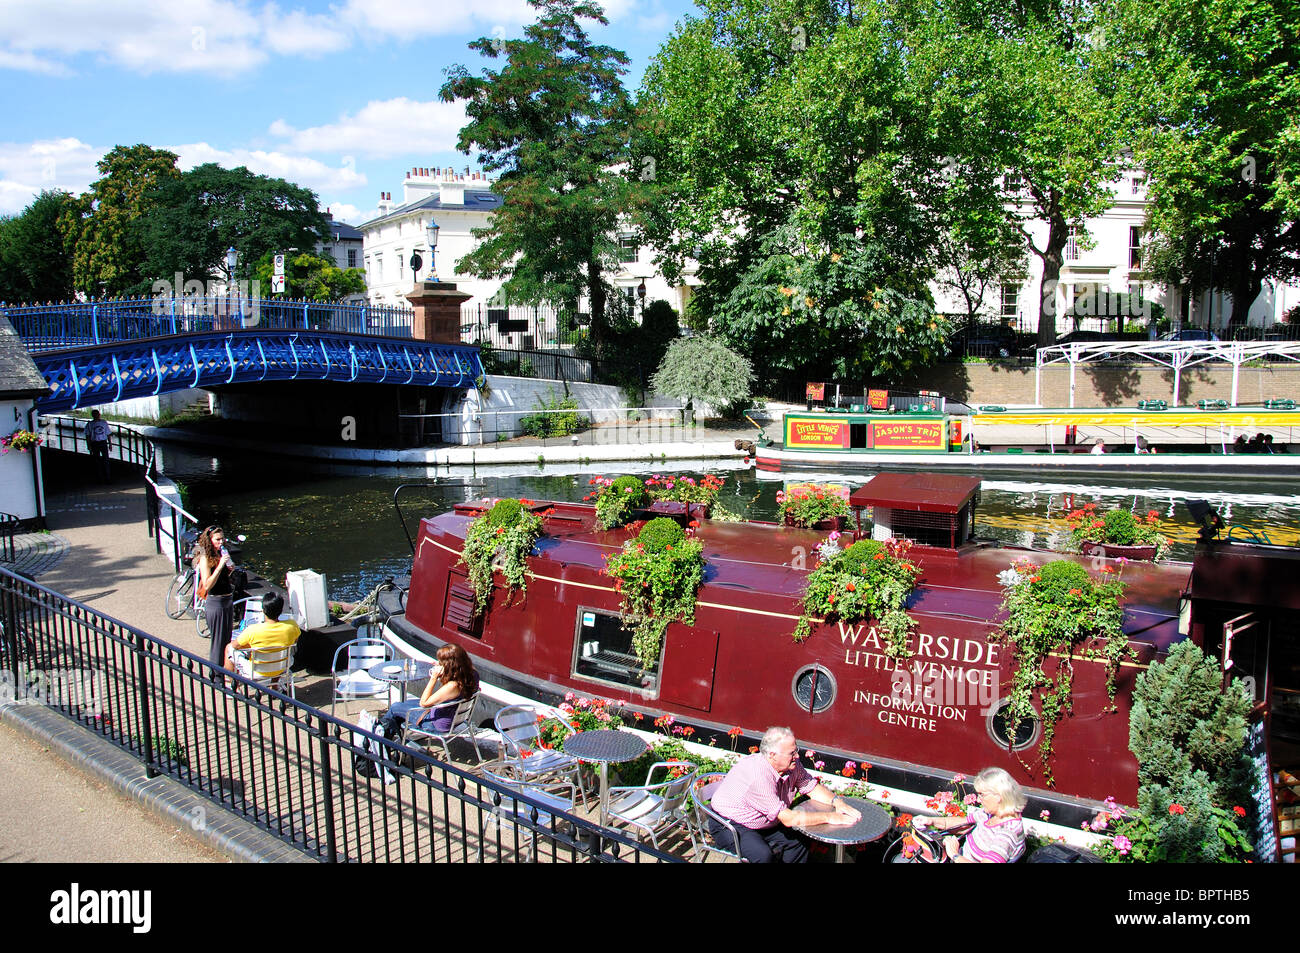 waterside cafe little venice maida vale city of westminster stock photo royalty free image. Black Bedroom Furniture Sets. Home Design Ideas